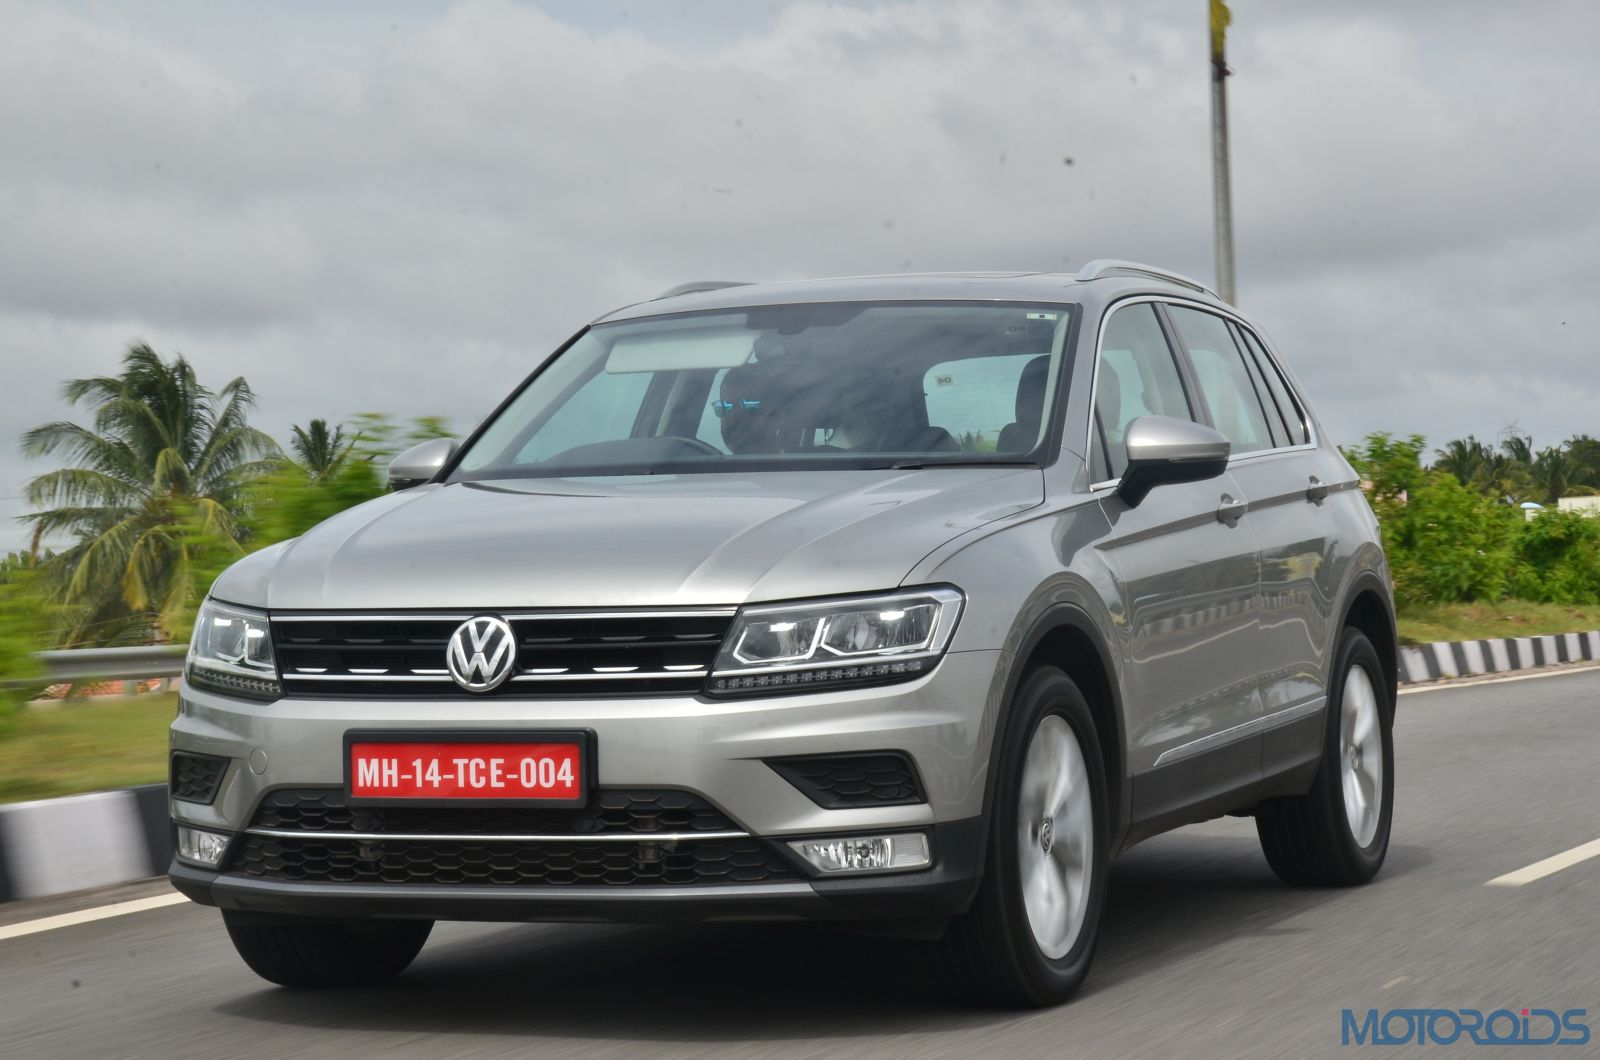 new volkswagen tiguan india review price specs mileage image gallery interior and features. Black Bedroom Furniture Sets. Home Design Ideas